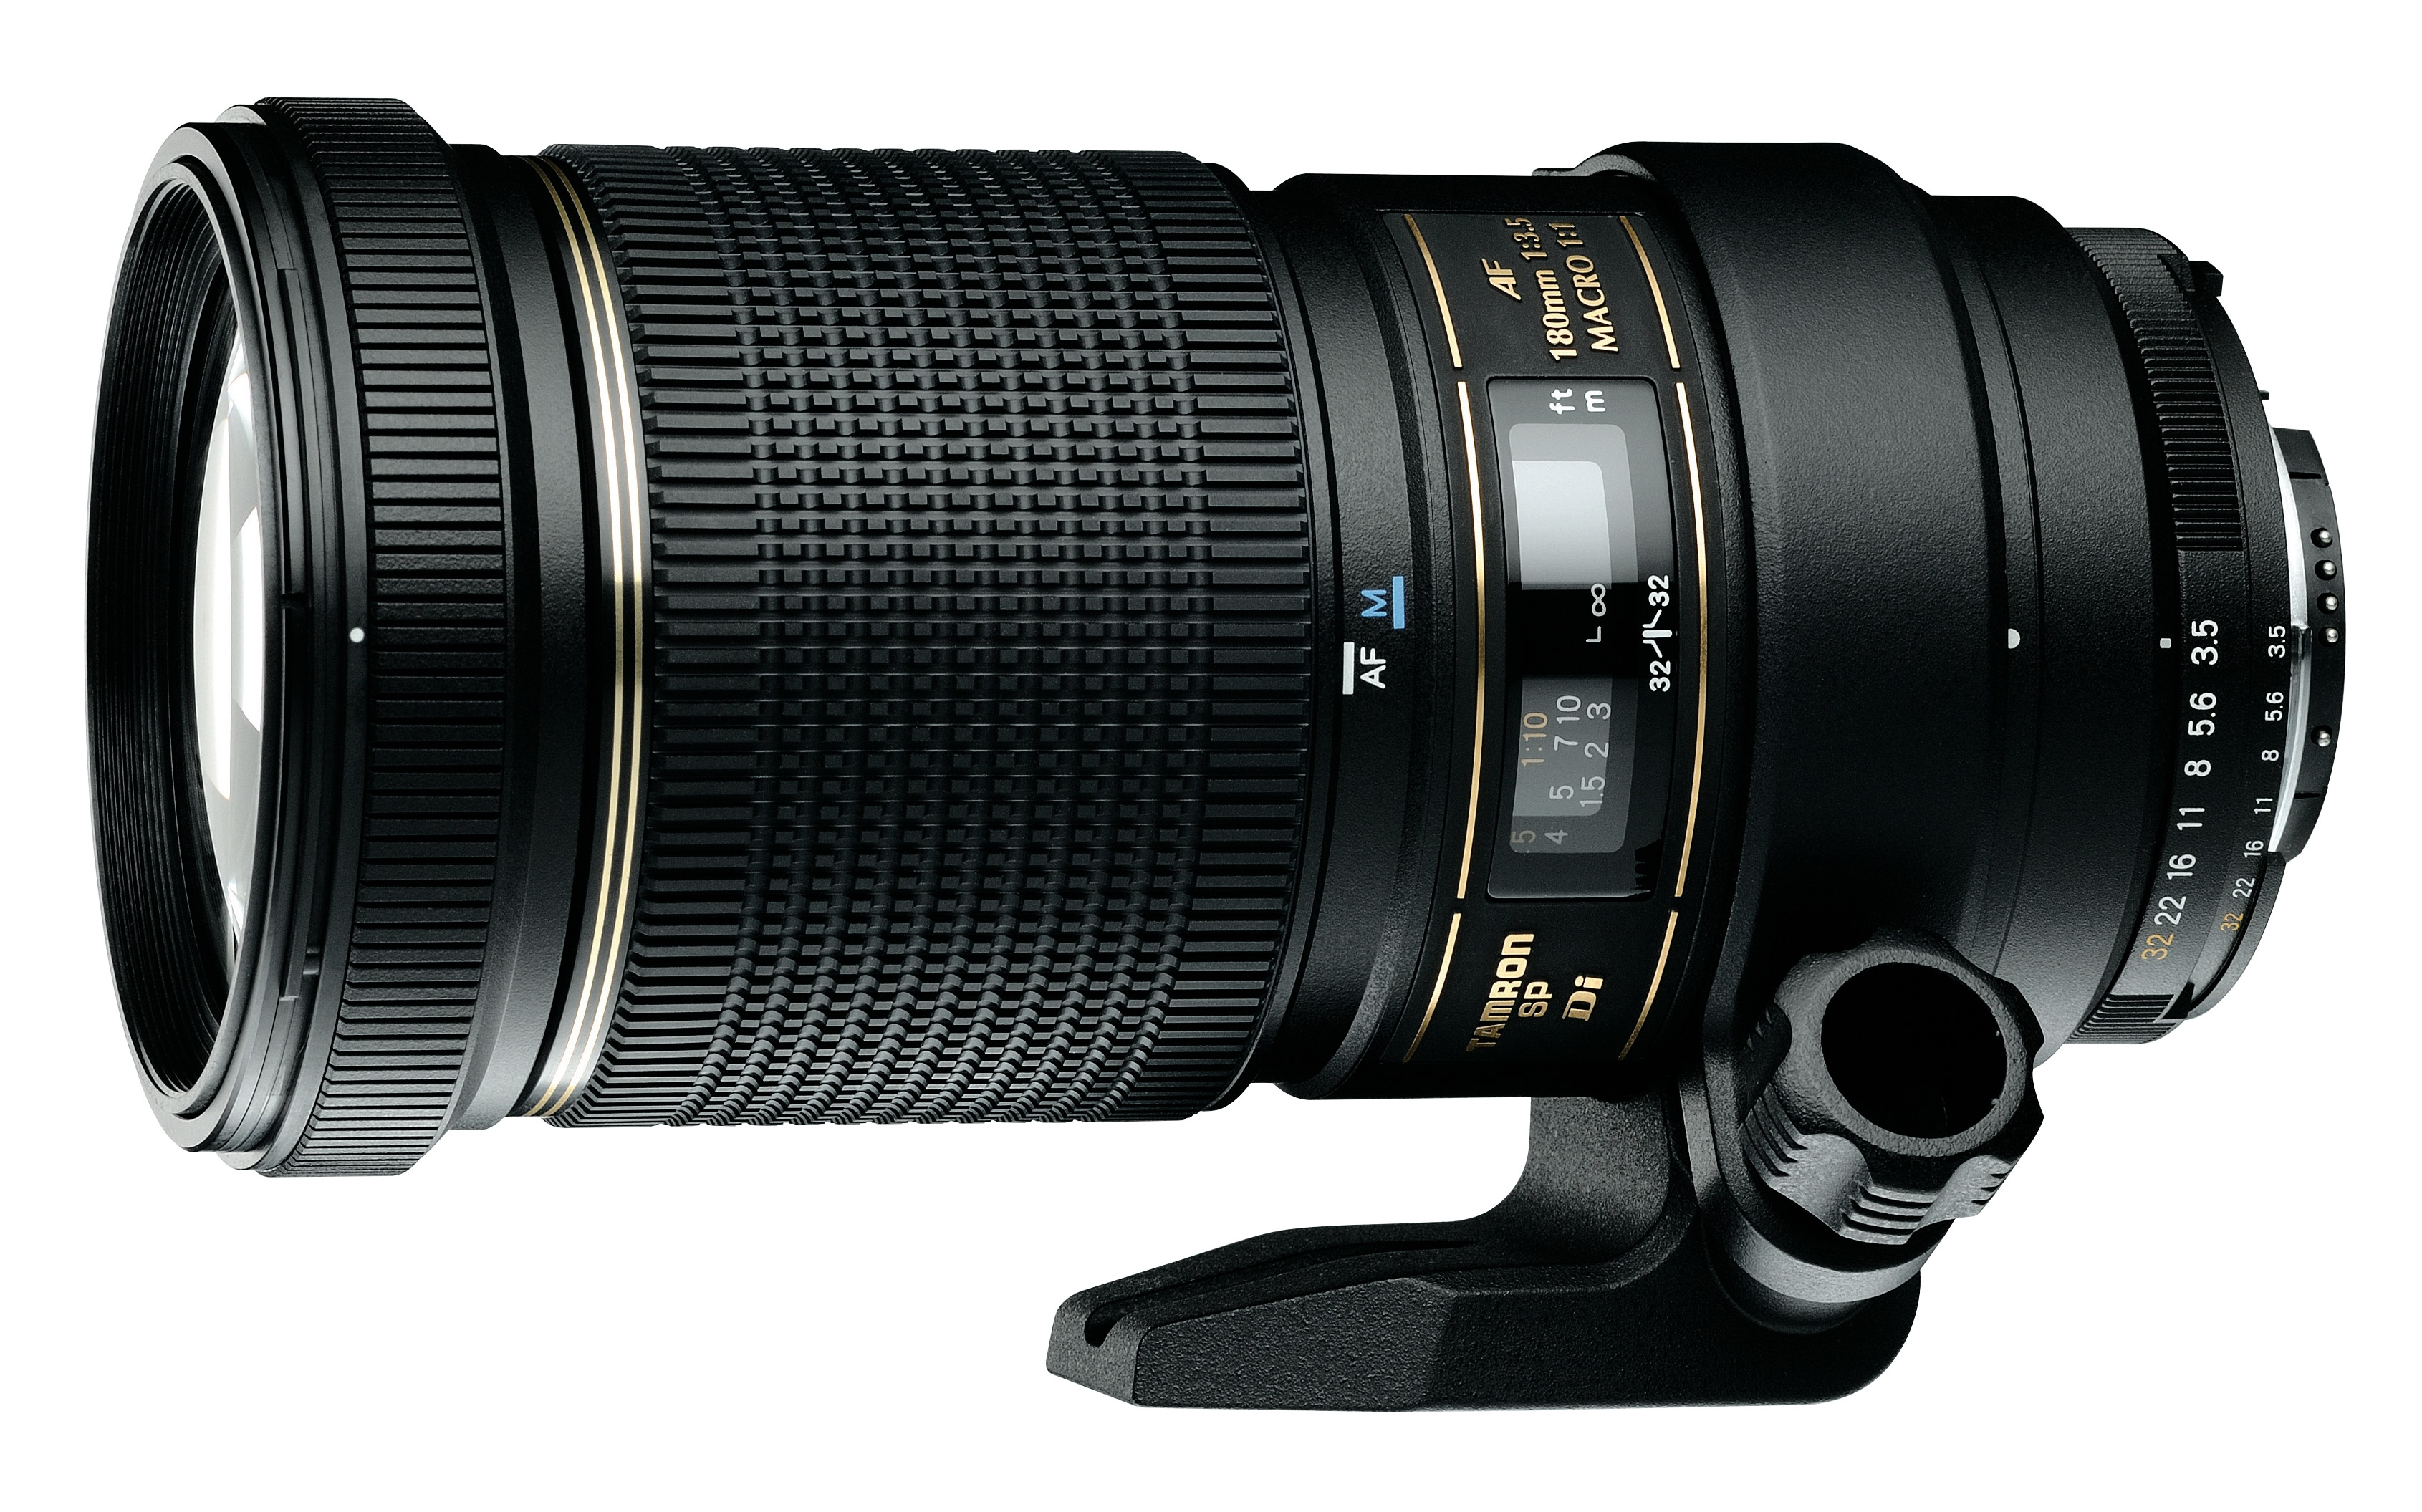 Tamron SP 180mm f/3.5 Di LD Macro